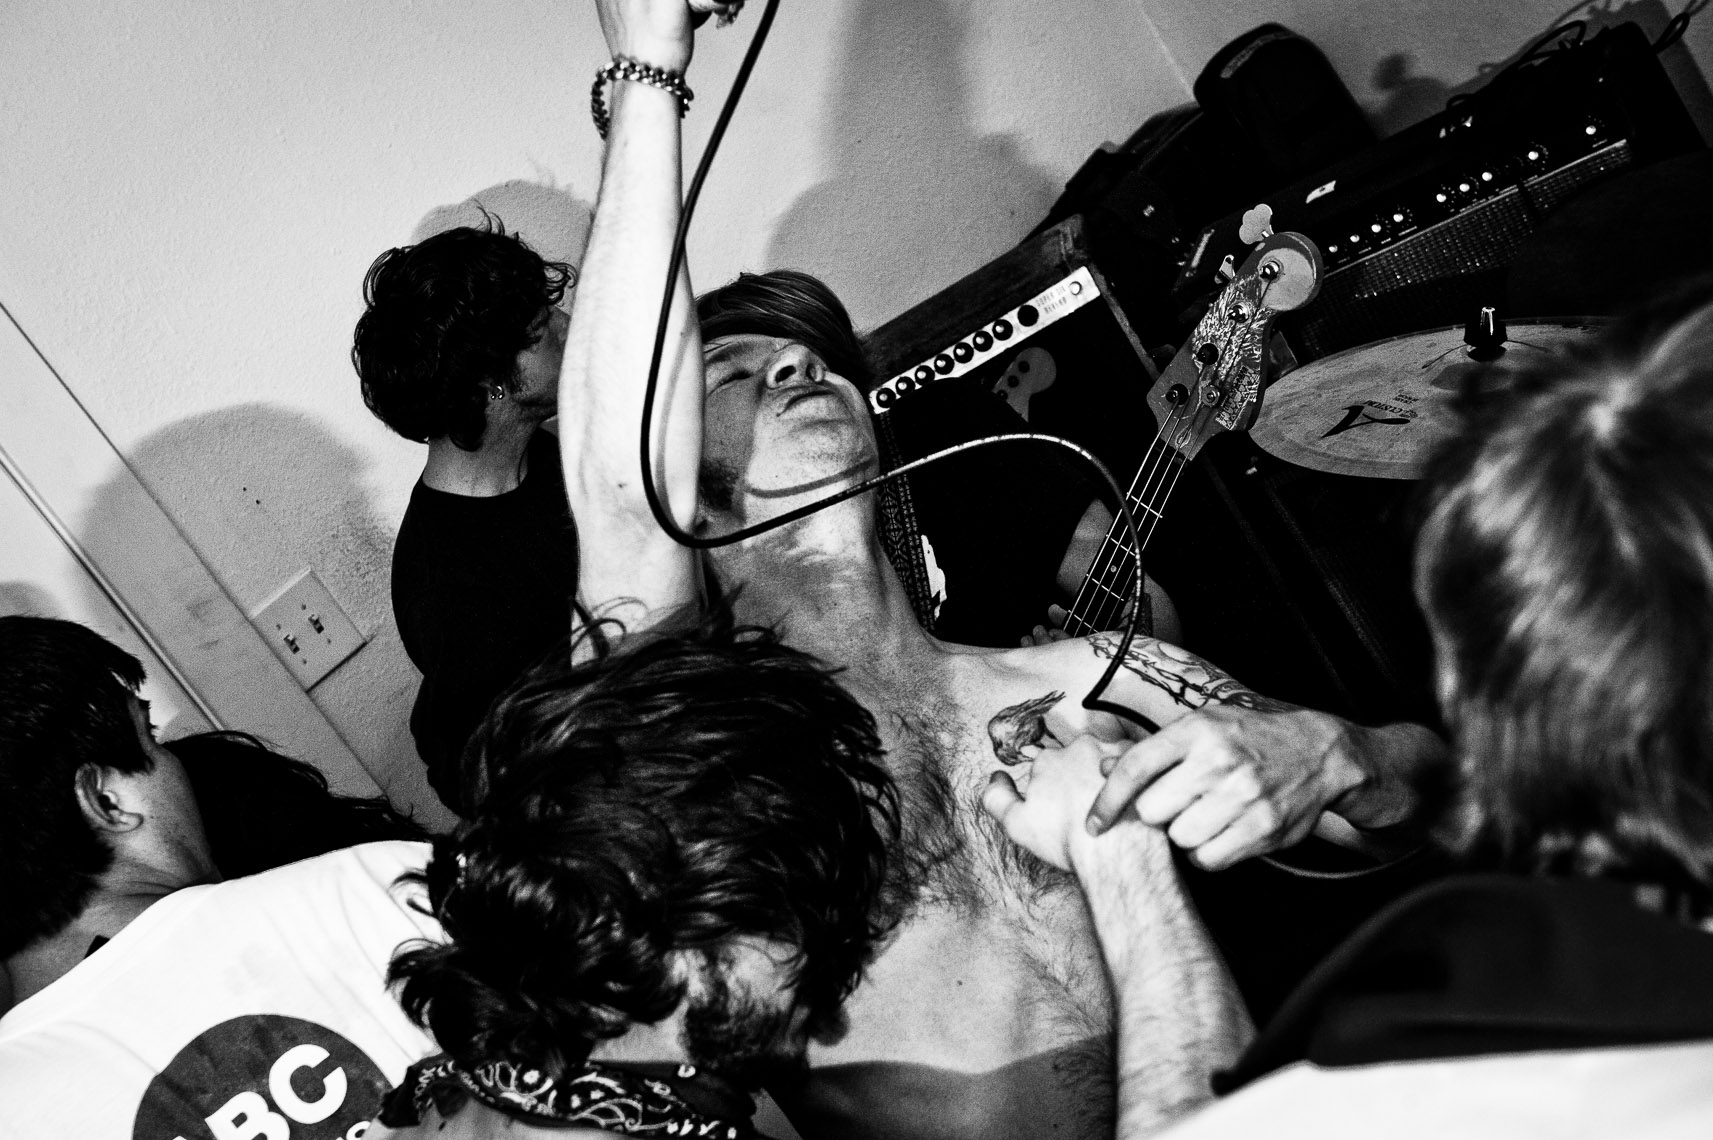 House show, live music, rock show photo